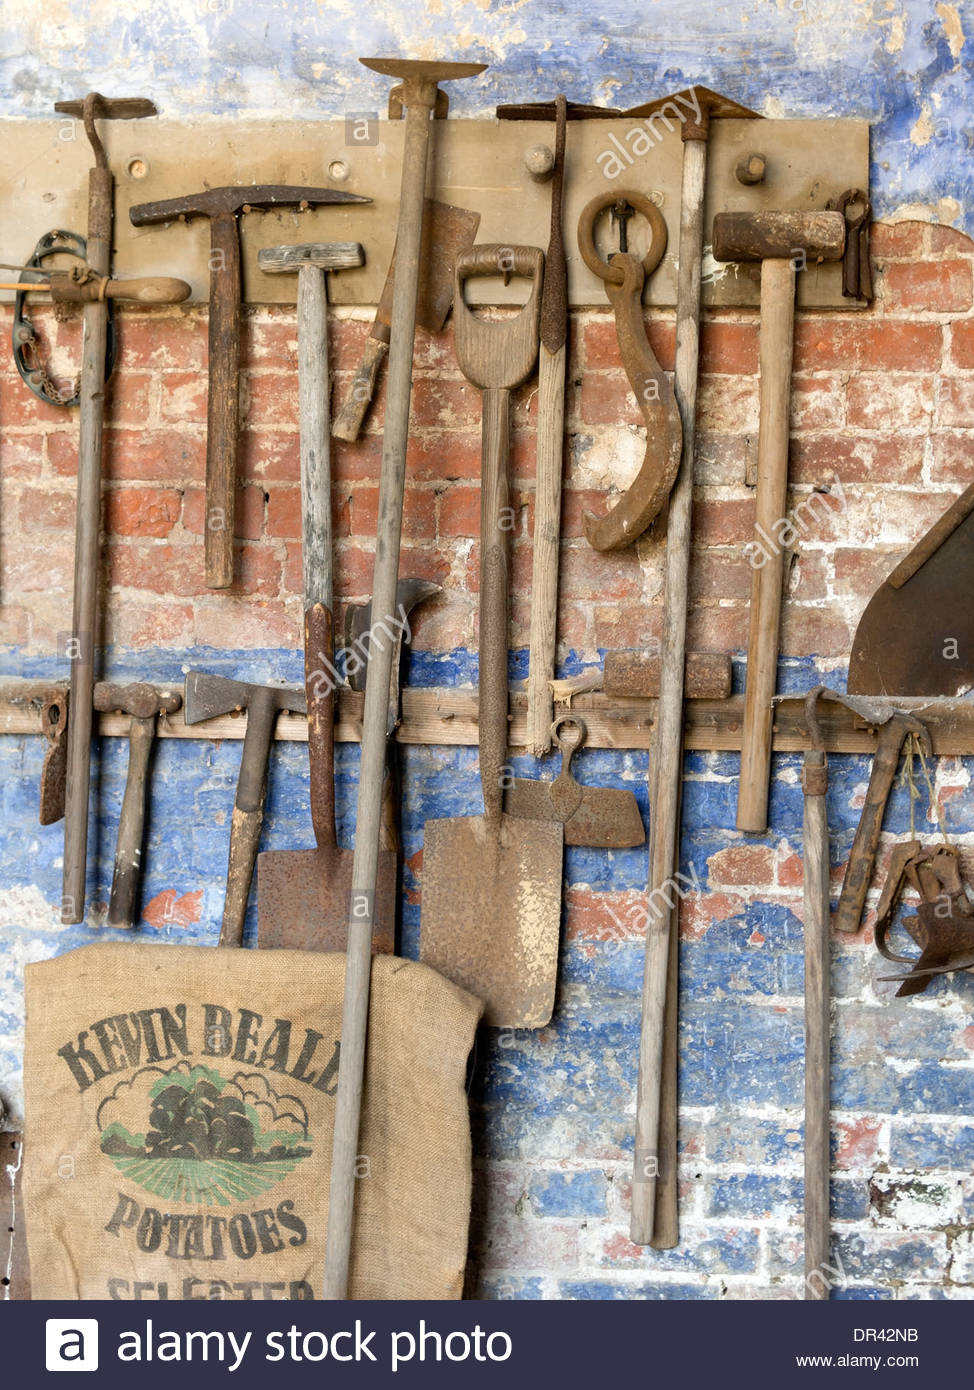 Genial Old Gardening Tools Hanging On Wall In Gardeneru0027s Bothy, Calke Abbey,  Ticknall, Derbyshire